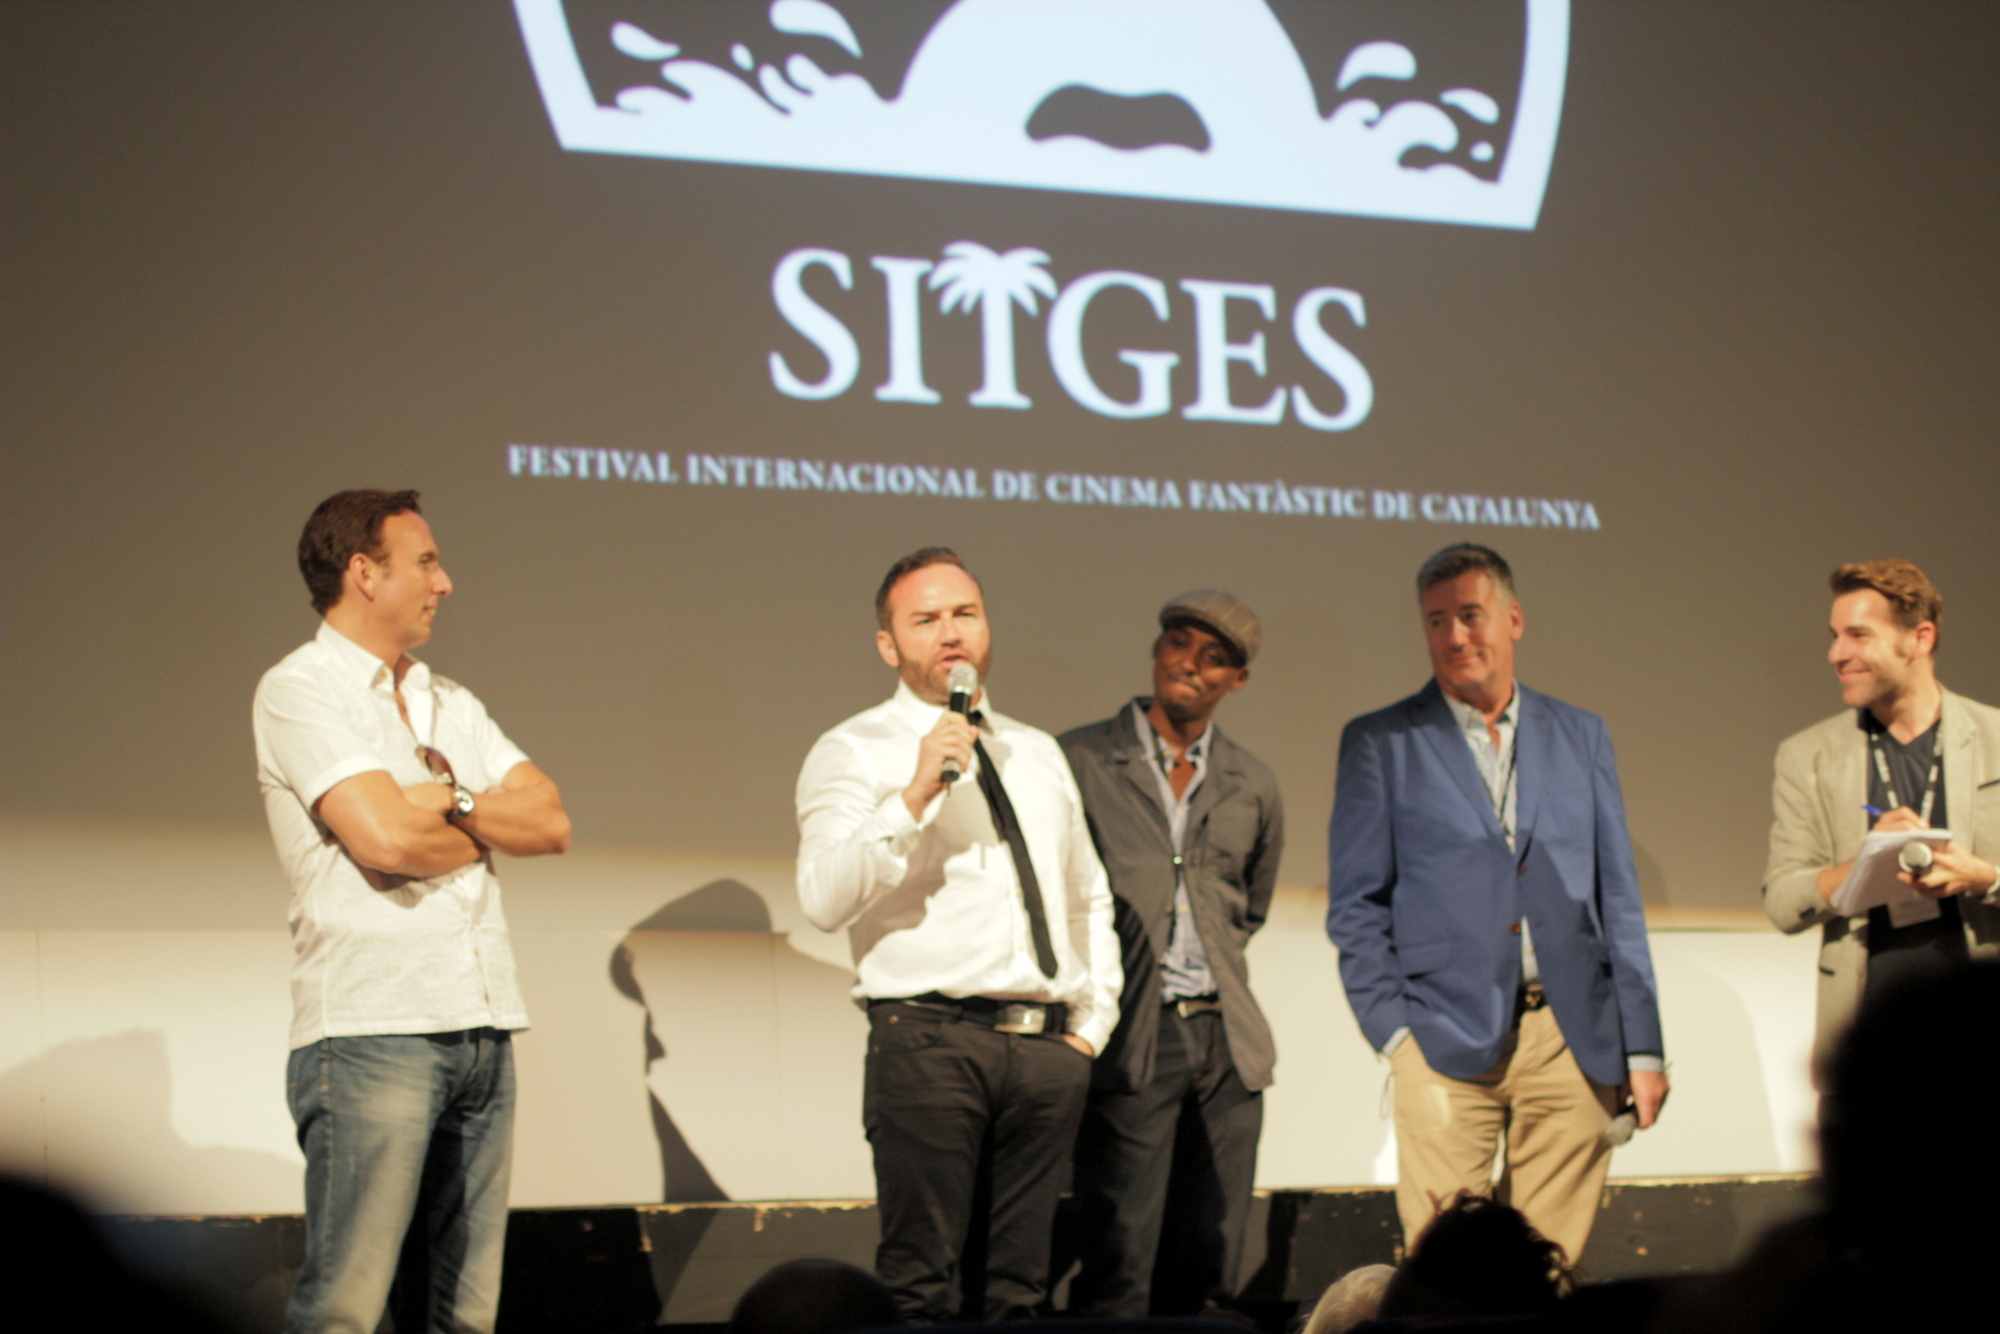 Film: Ultra Swank Goes to the Sitges Film Festival | Ultra